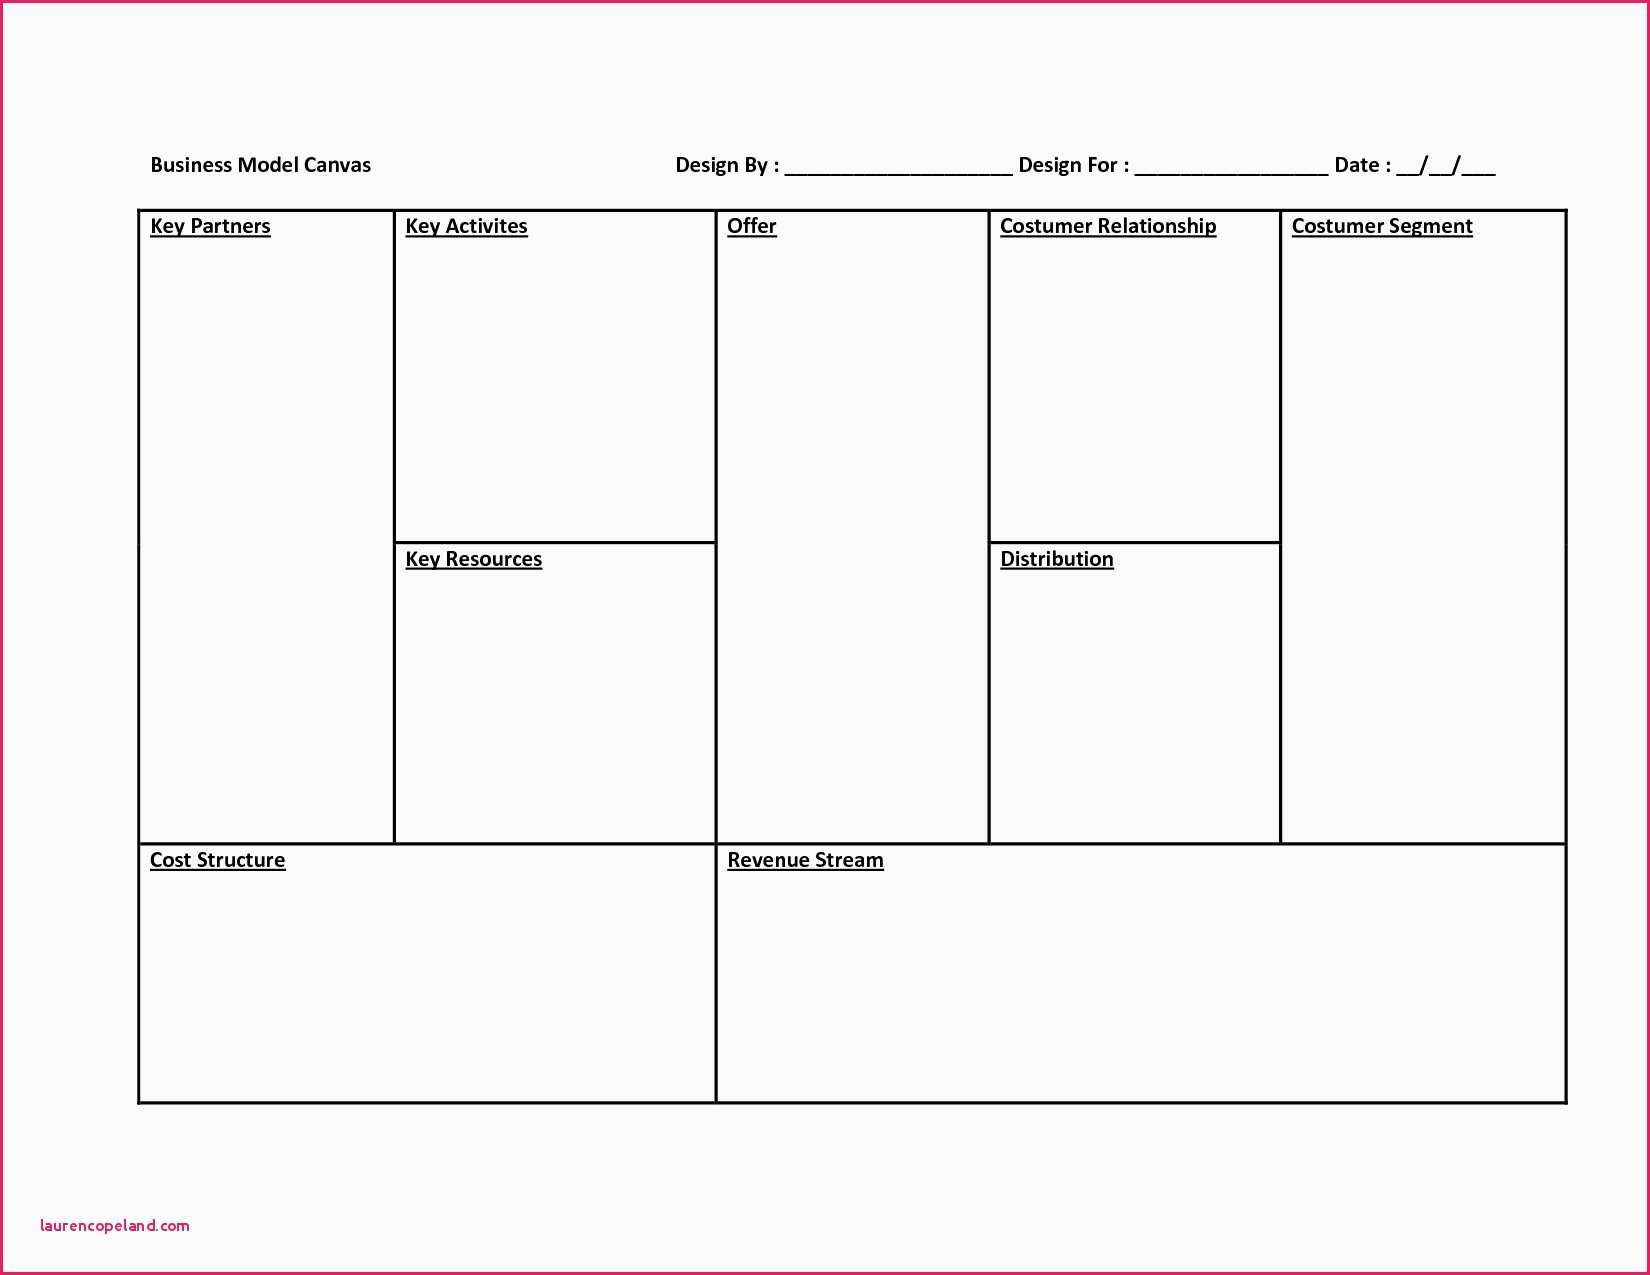 Business Model Canvas Template Word Atlantaauctionco